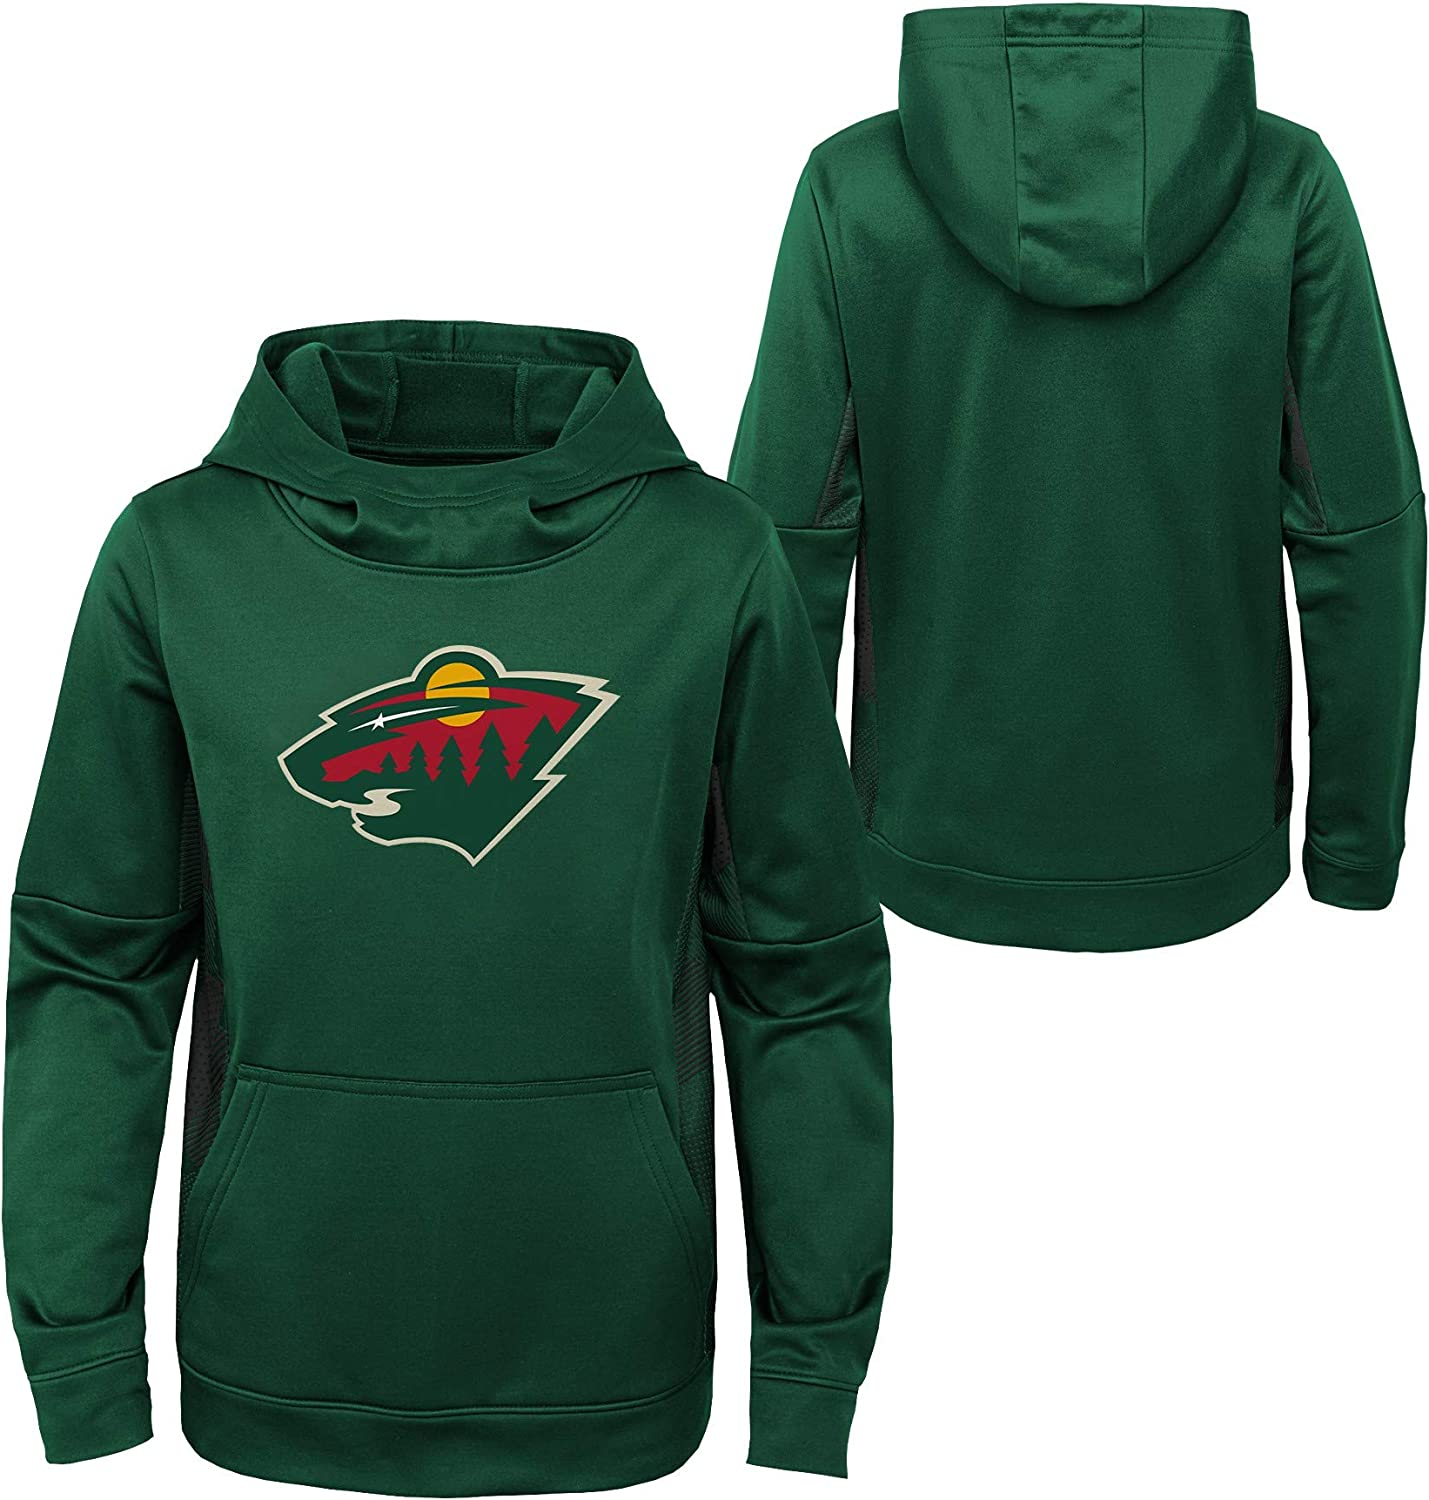 OuterStuff Youth NHL Minnesota Wild Performance Hoodie Youth Sizing